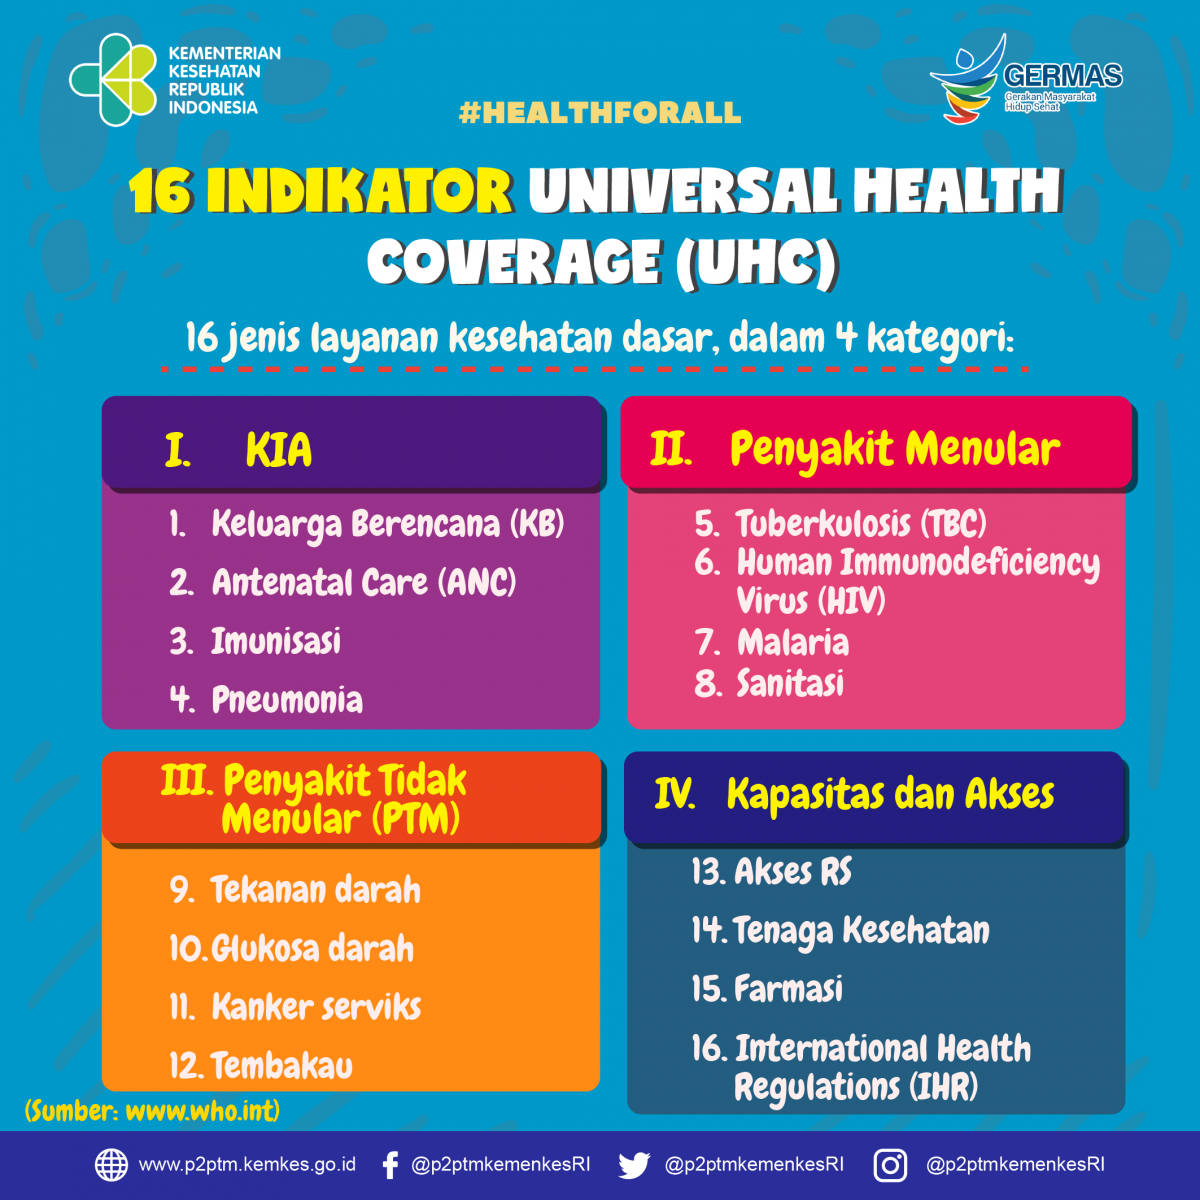 16 Indikator Universal Health Coverage